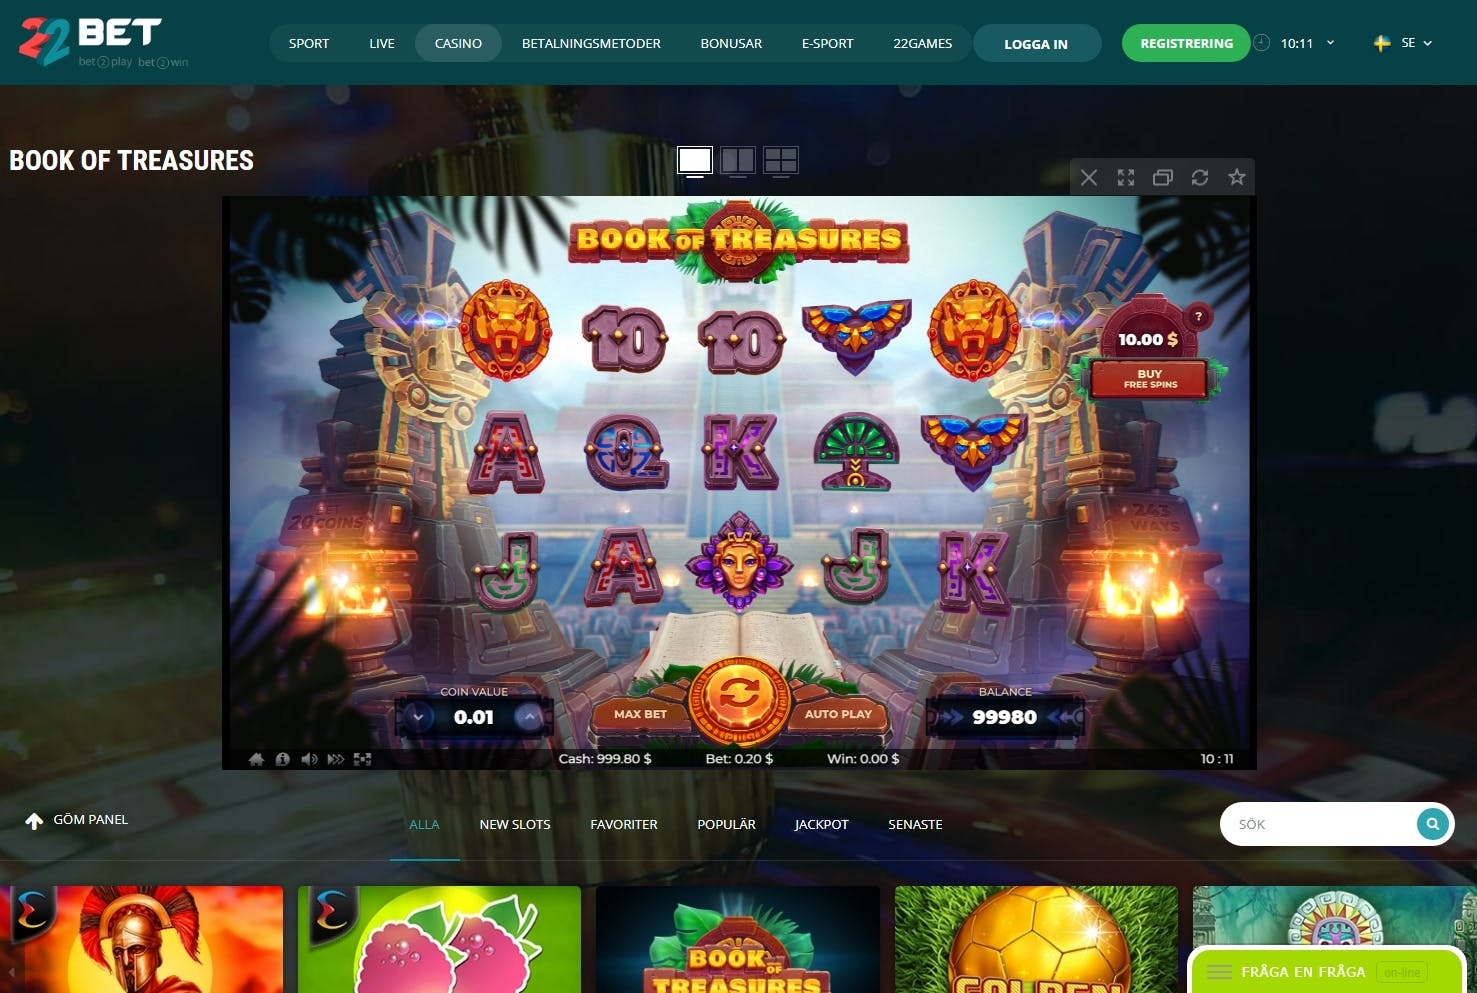 Multilotto bonuskod recension casino betting wish